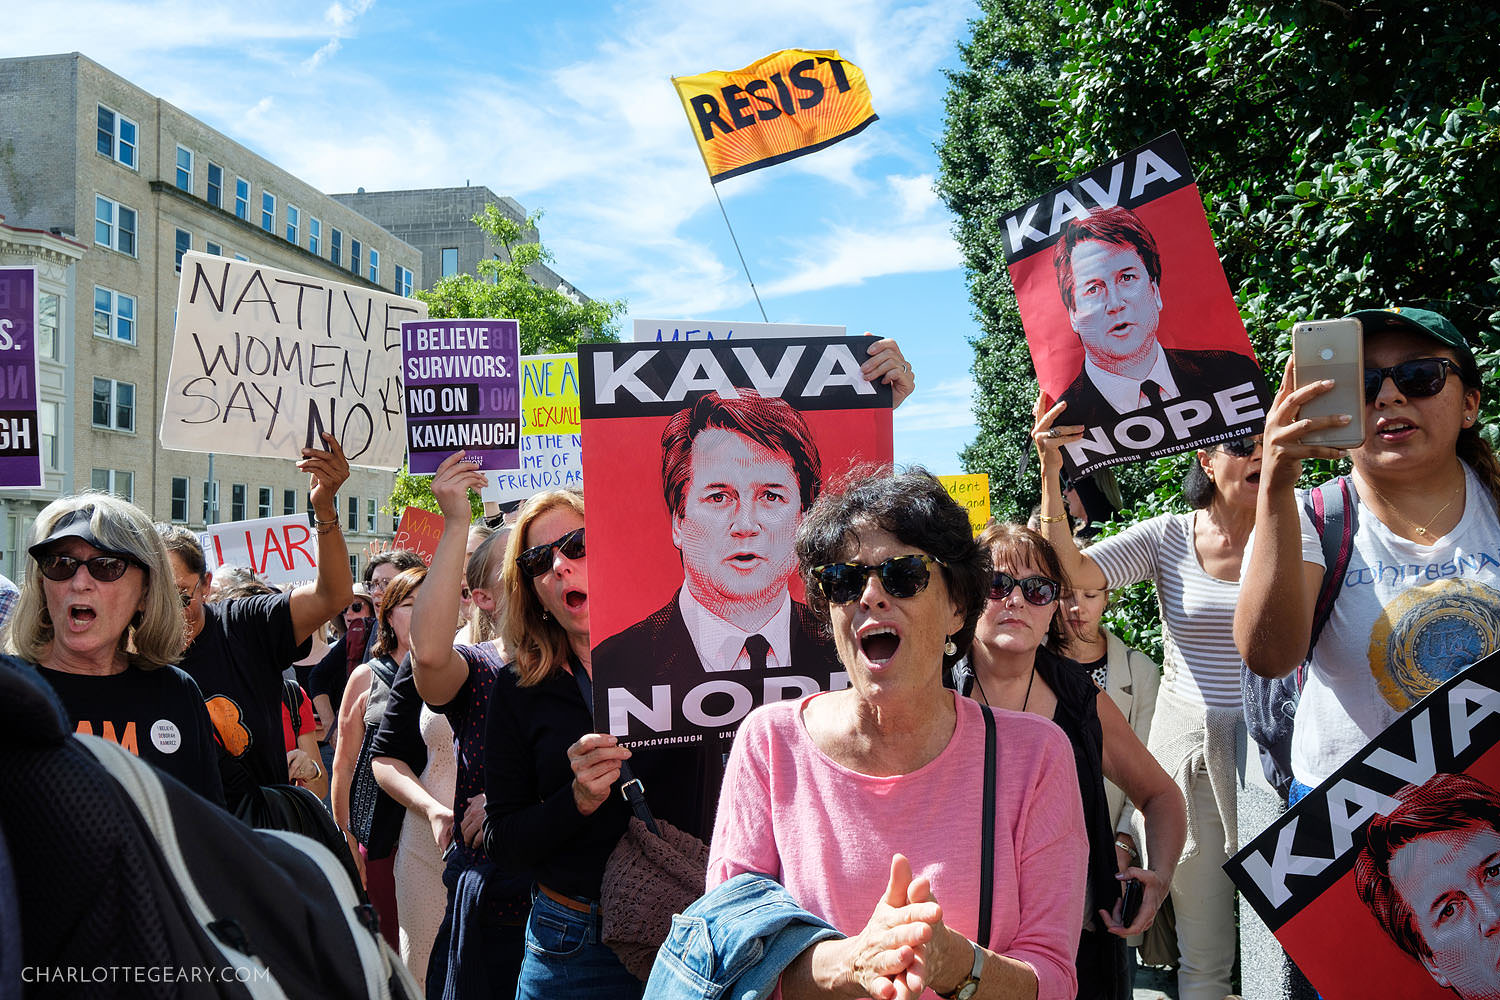 Protestors outside the Senate Office Building before the confirmation of Kavanaugh to Supreme Court (Washington, D.C.)